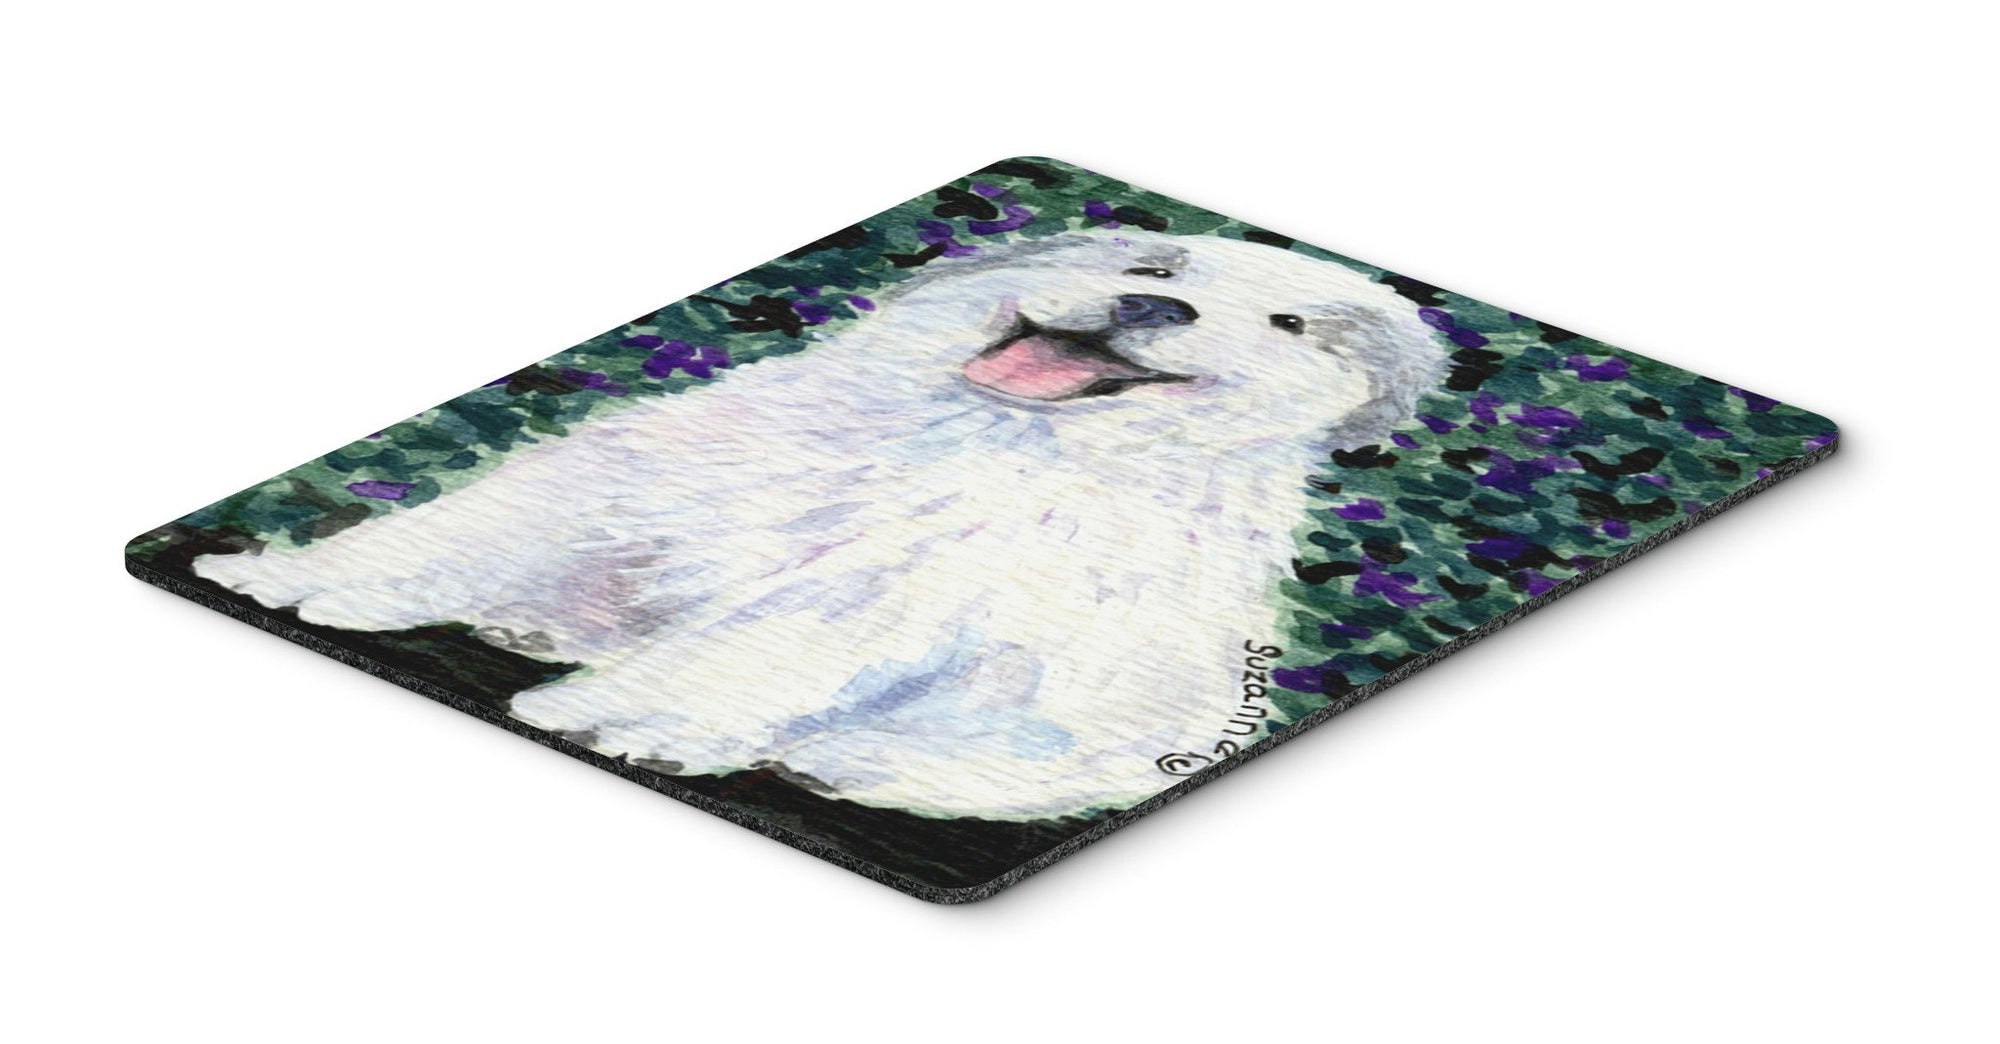 Buy this Great Pyrenees Mouse Pad / Hot Pad / Trivet